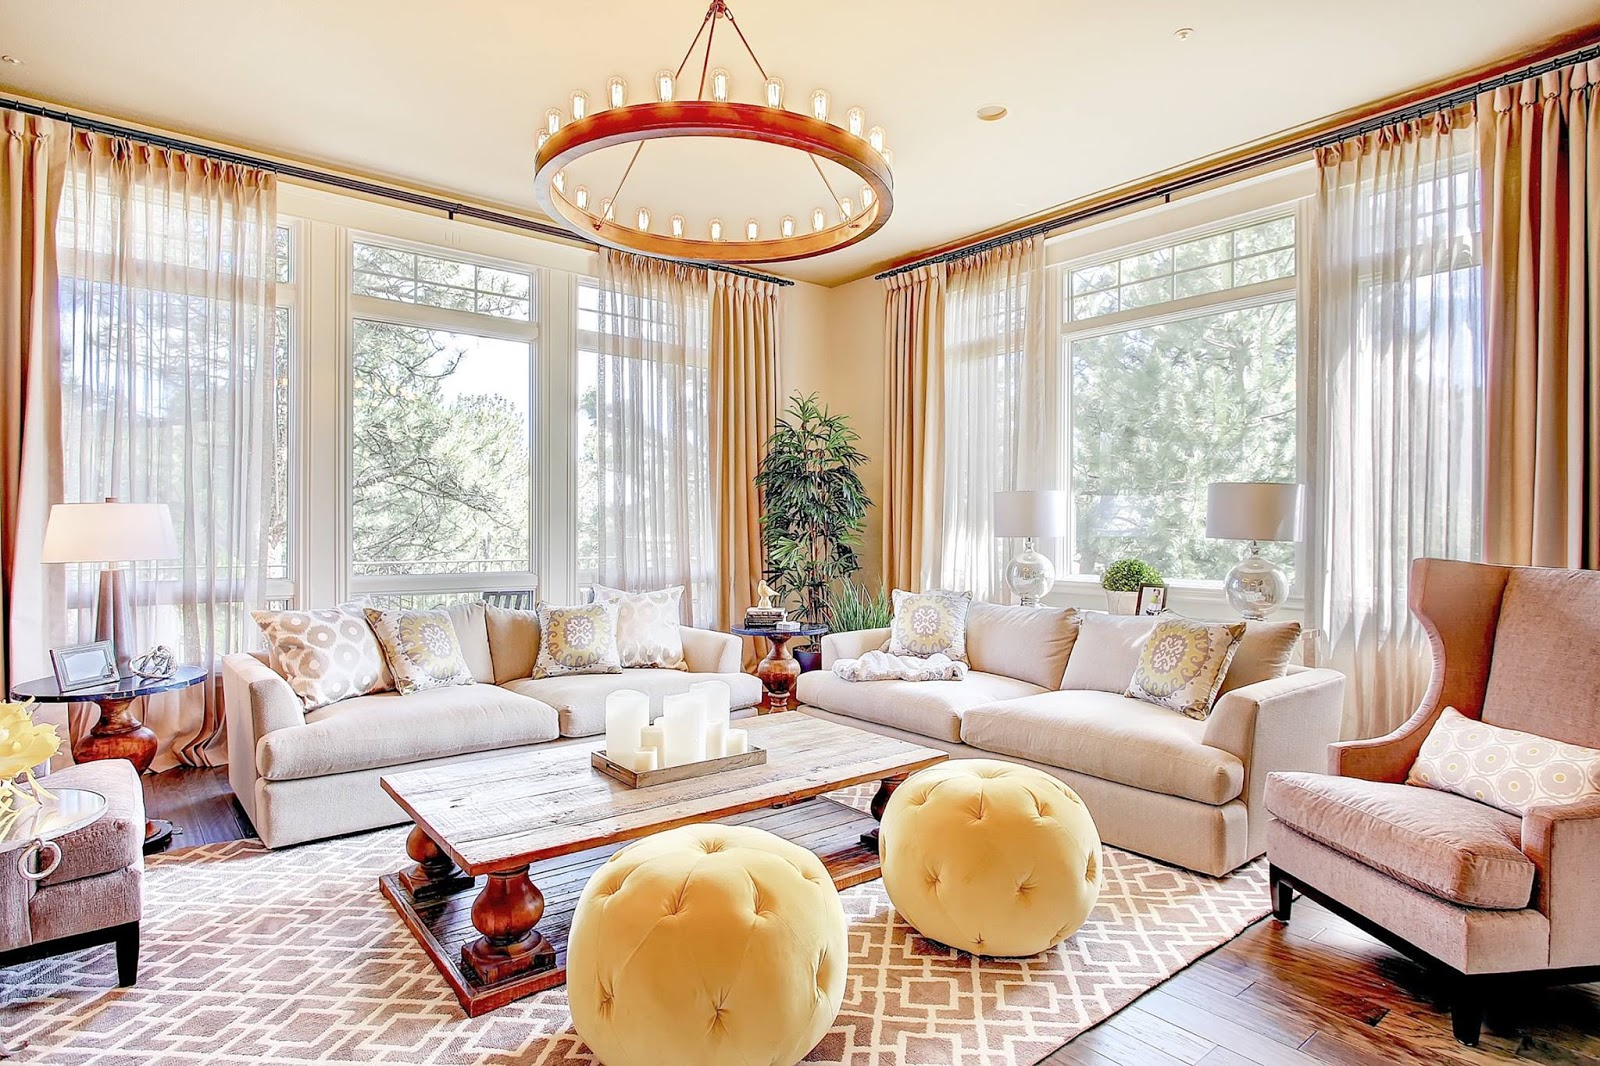 GORGEOUS loloi rugs on wooden floor plus cream sofa set under the sweet chandelier for living room decor ideas